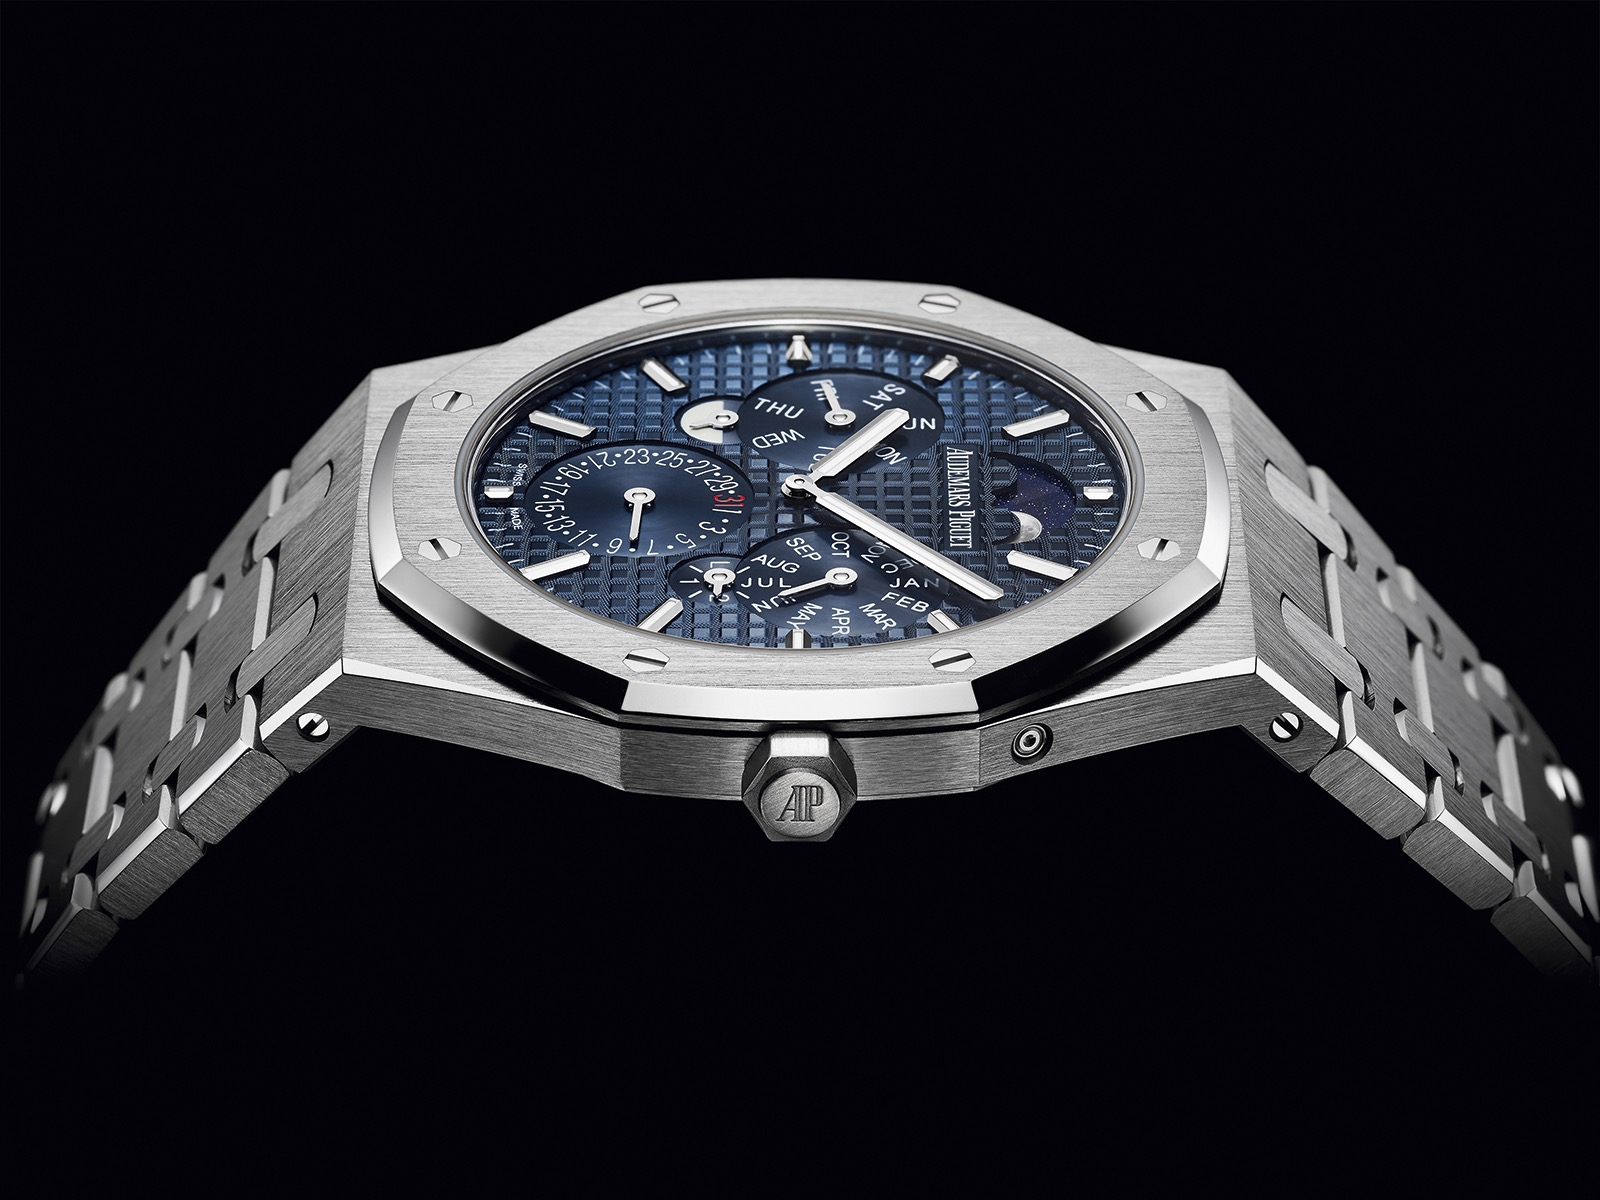 Audemars Piguet Royal Oak RD#2 Ultra-thin Perpetual Calendar